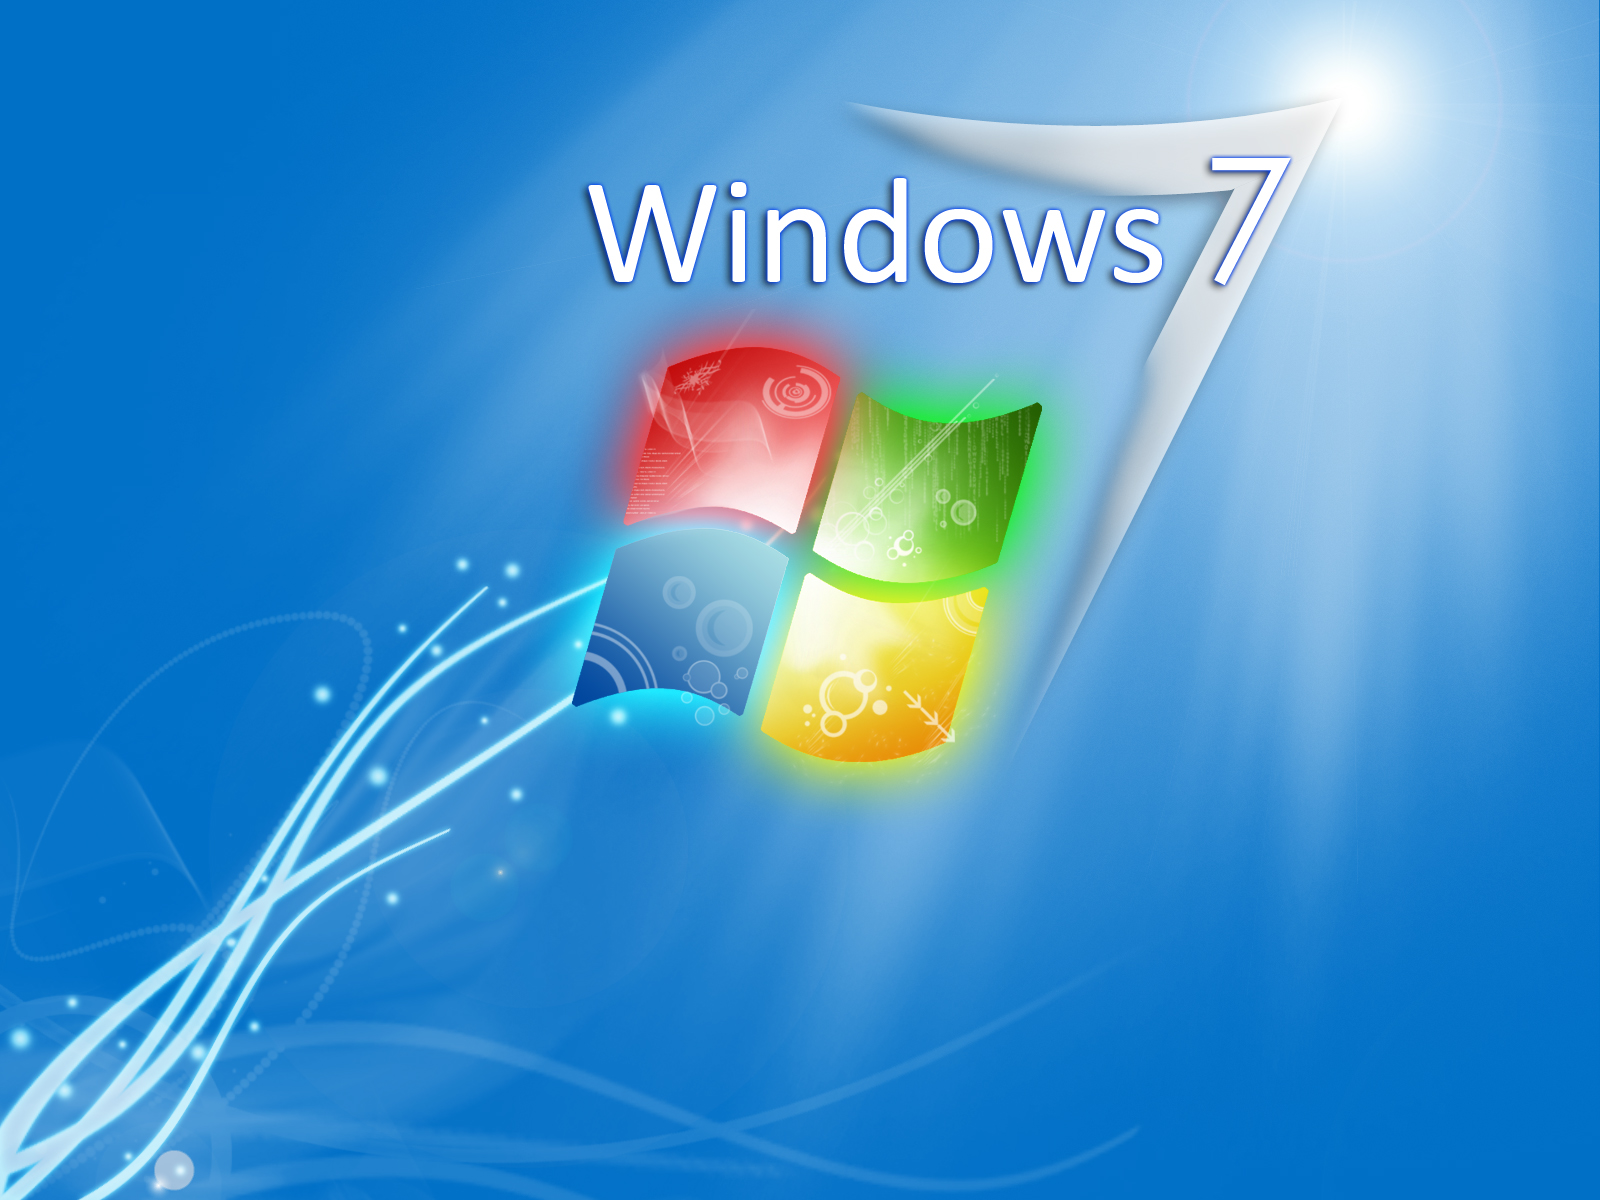 wall paper windows 7 - photo #29